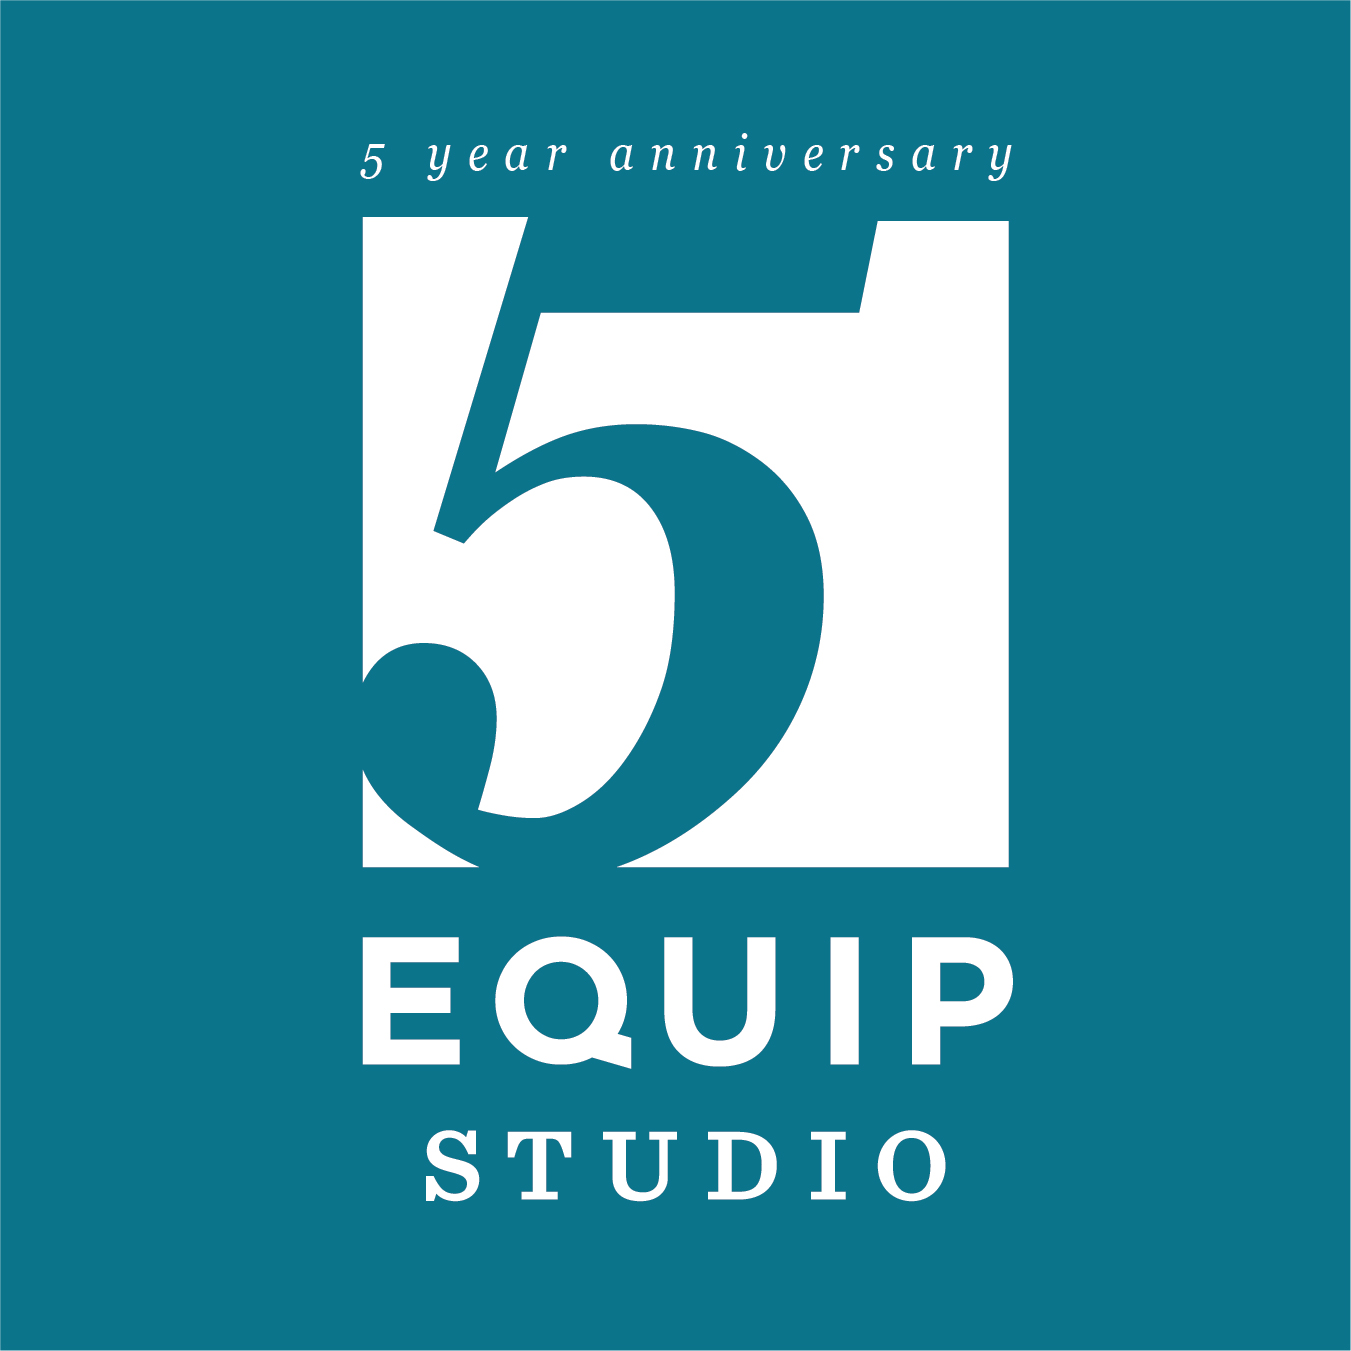 Five Year Anniversary - ES-WEB-EVENTS-2019-5YEAR01